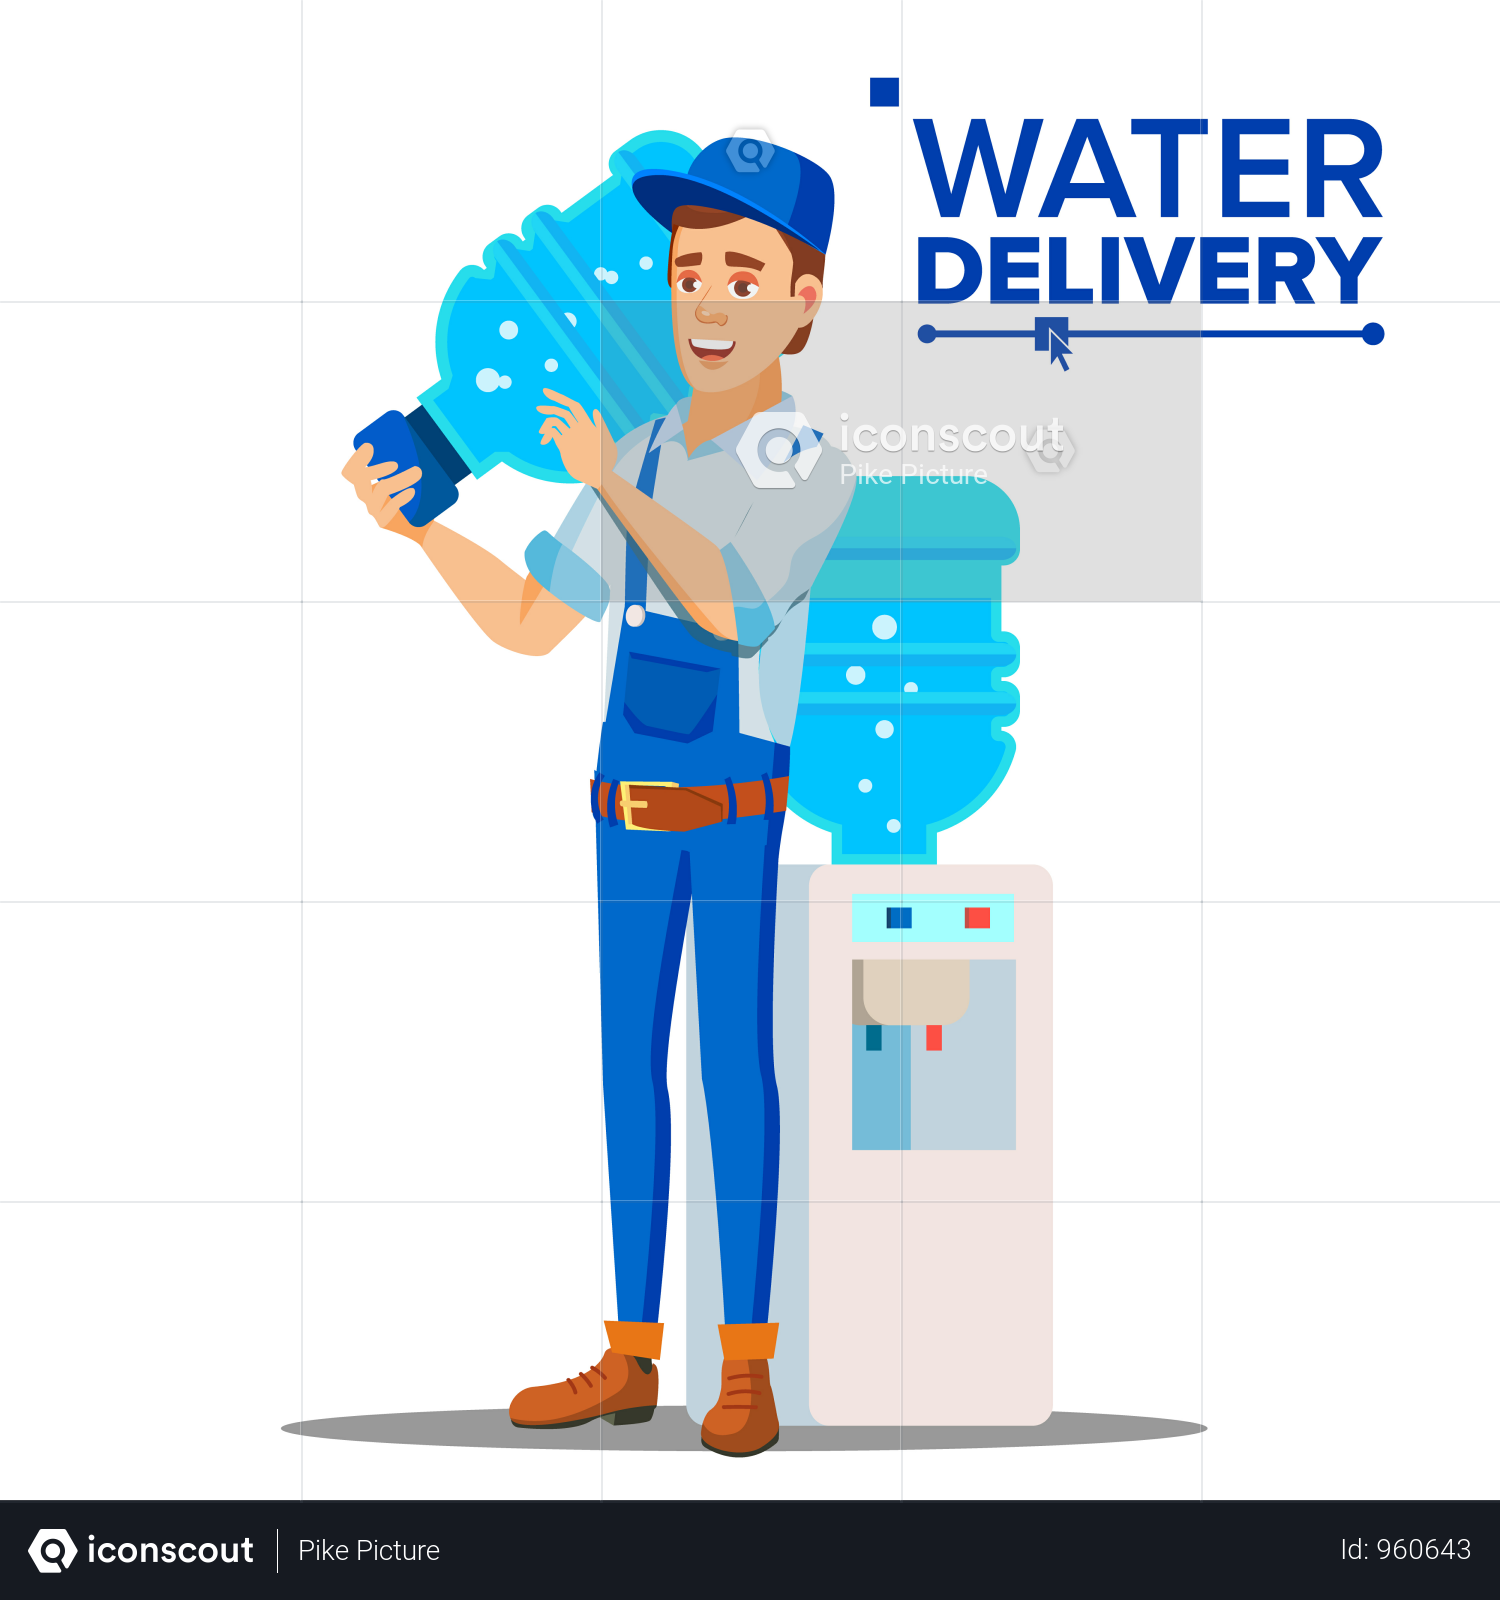 Premium Water Delivery Service Man Vector Illustration Download In Png Vector Format In 2020 Water Delivery Service Water Delivery Man Vector